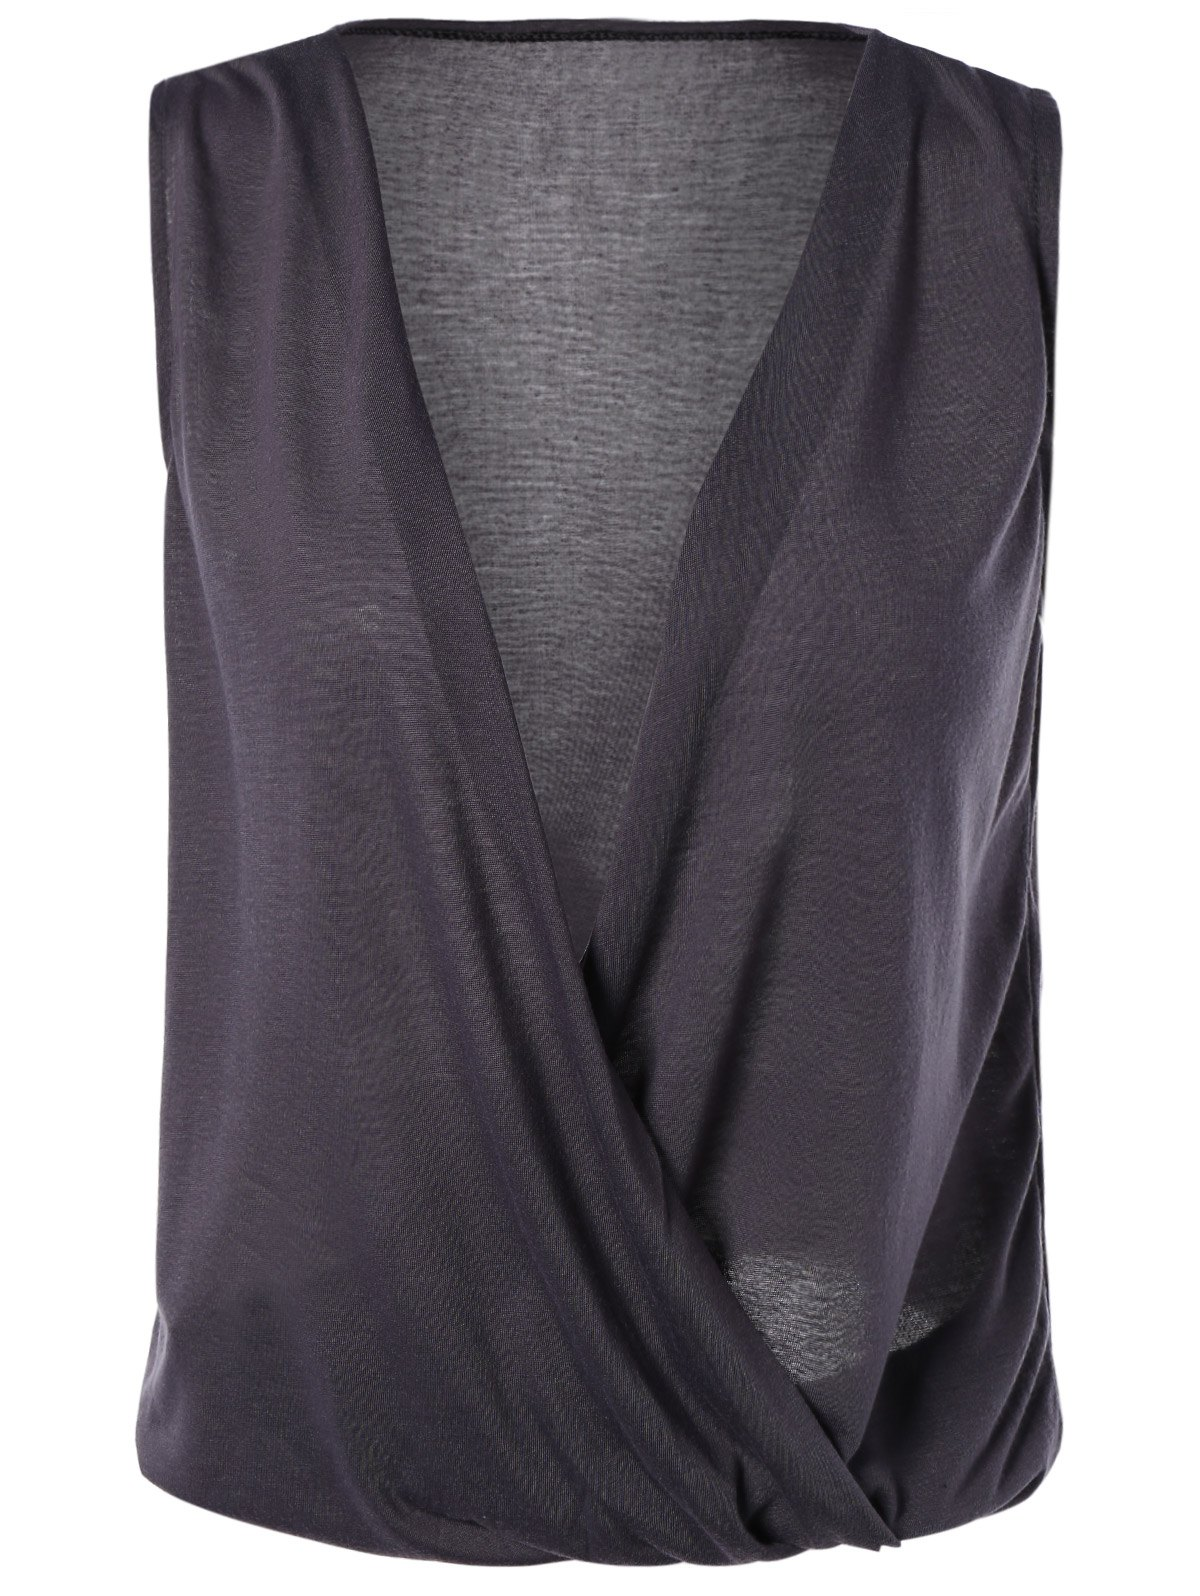 Fashionable Women's Plunging Neck Cap Sleeve Wrap Top - DEEP GRAY L